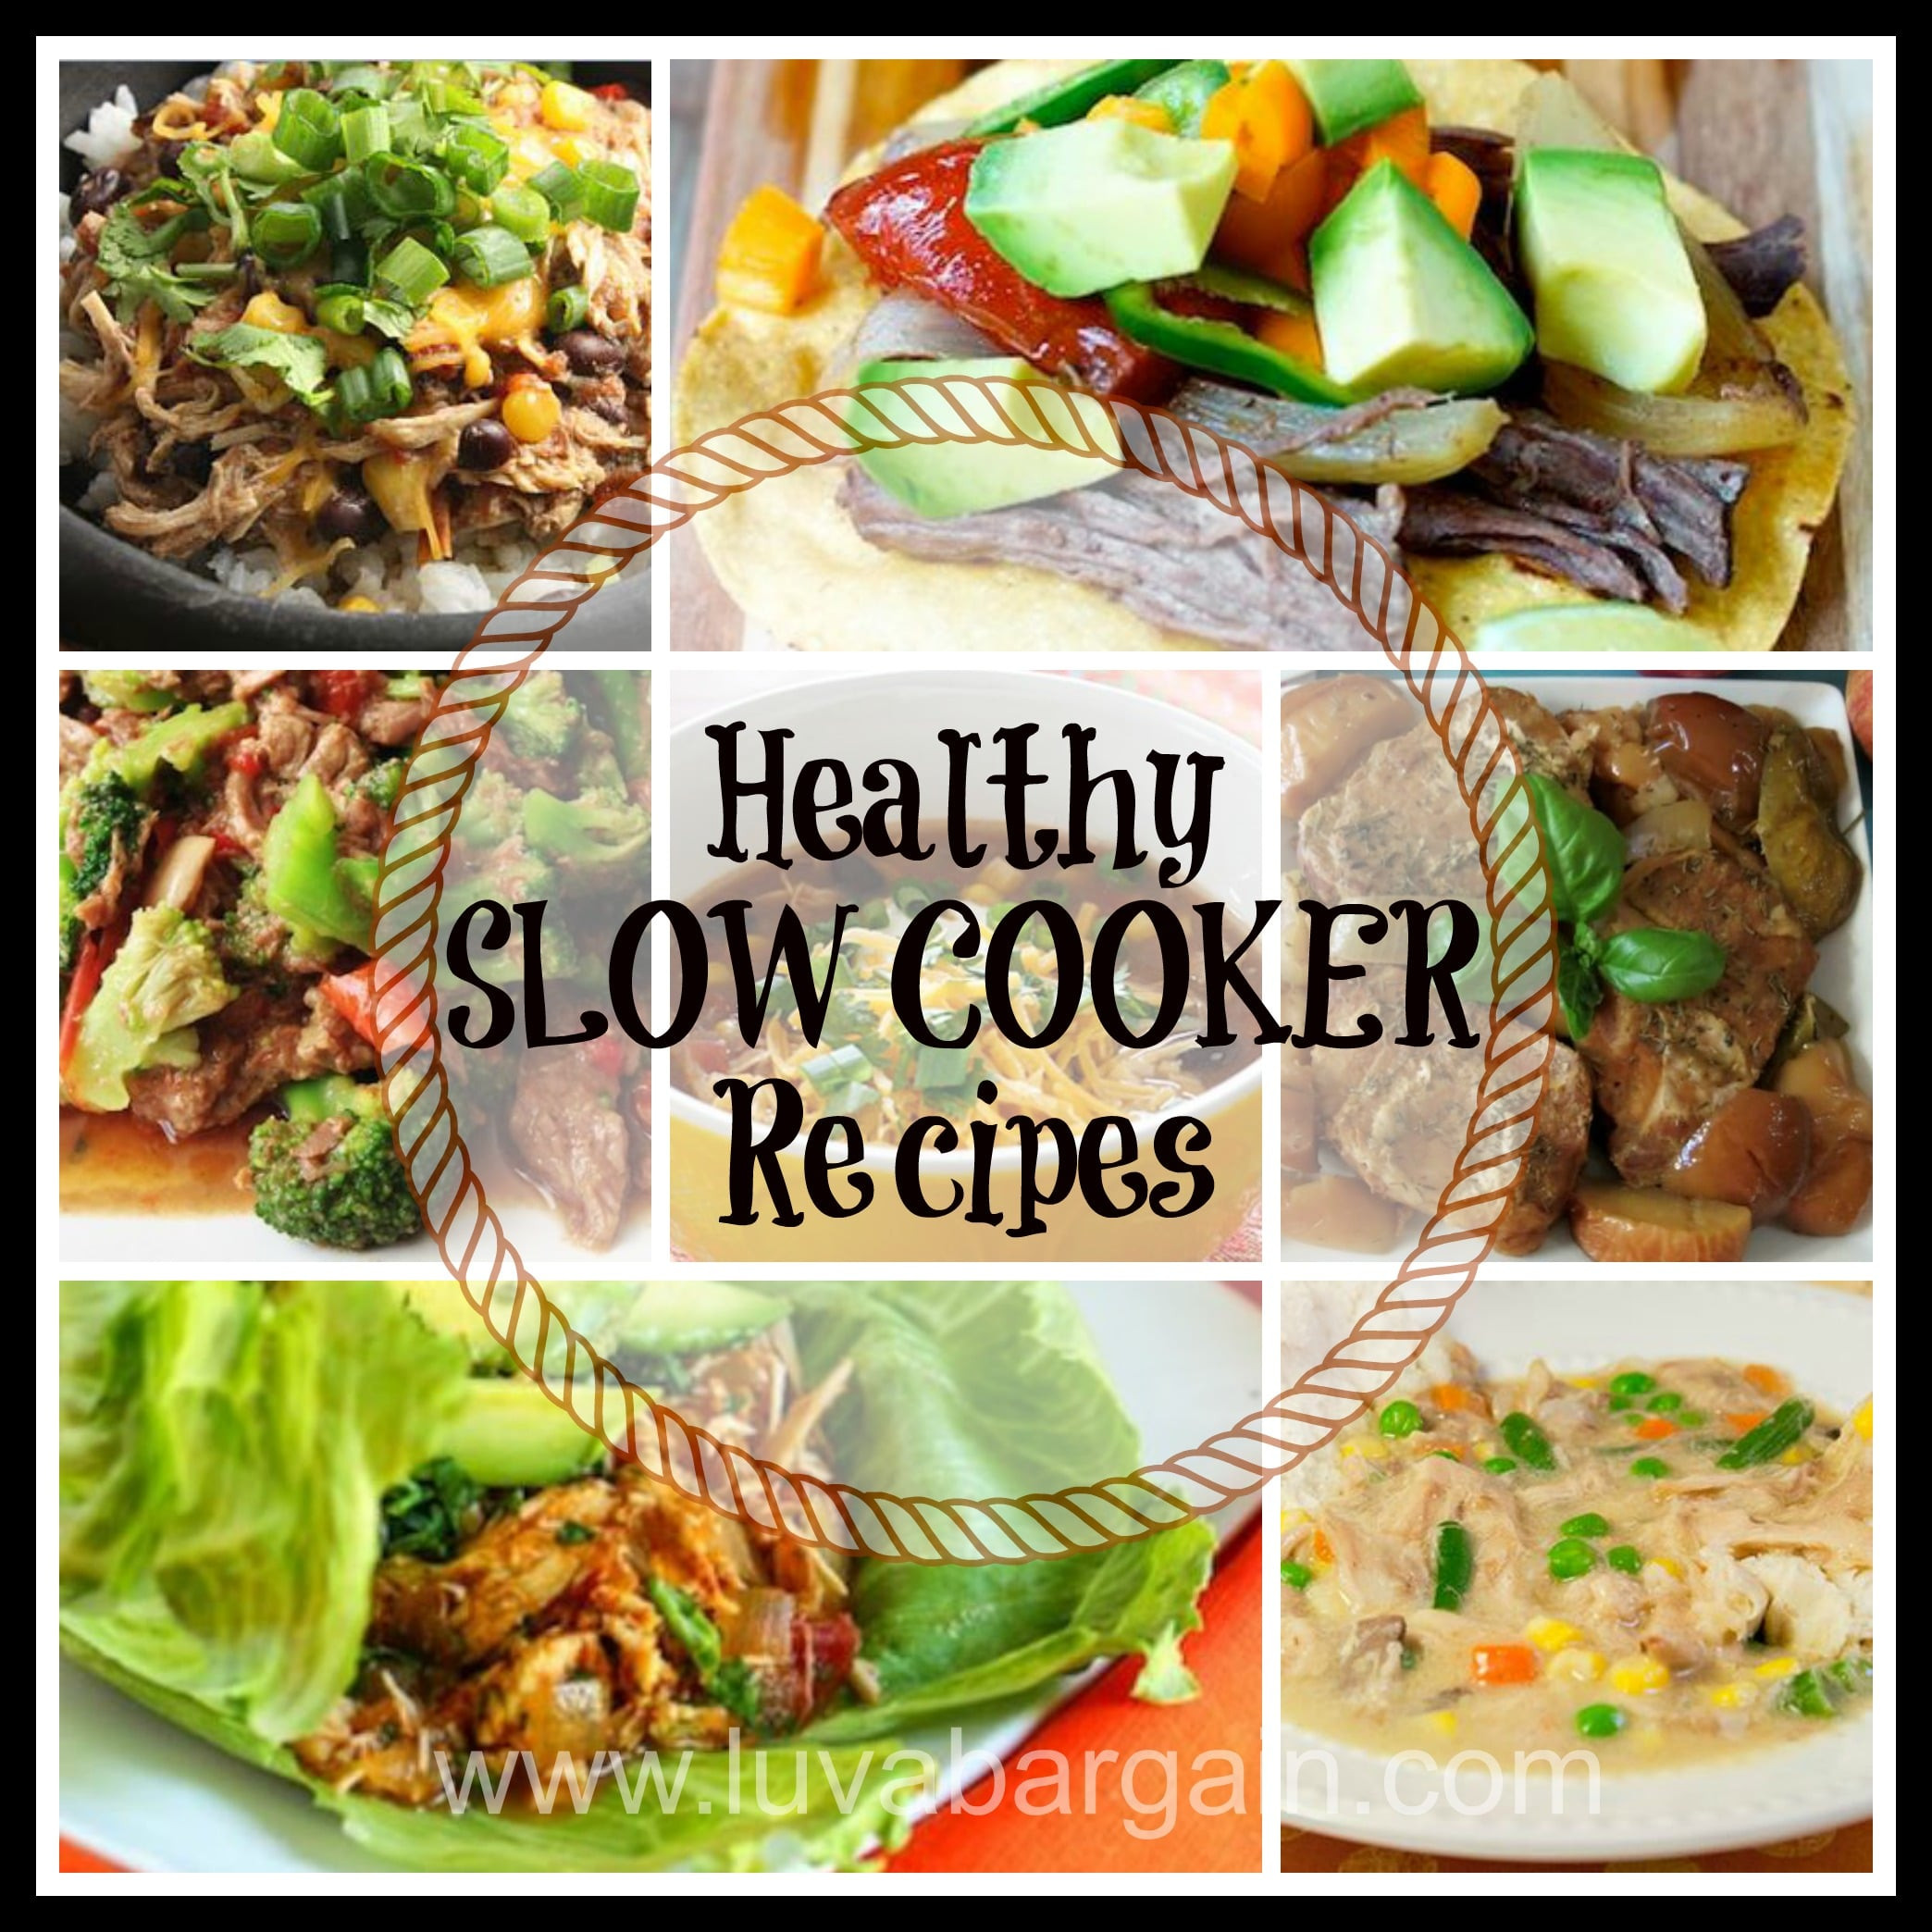 Healthy Easy Slow Cooker Recipes  Healthy Slow Cooker Recipes